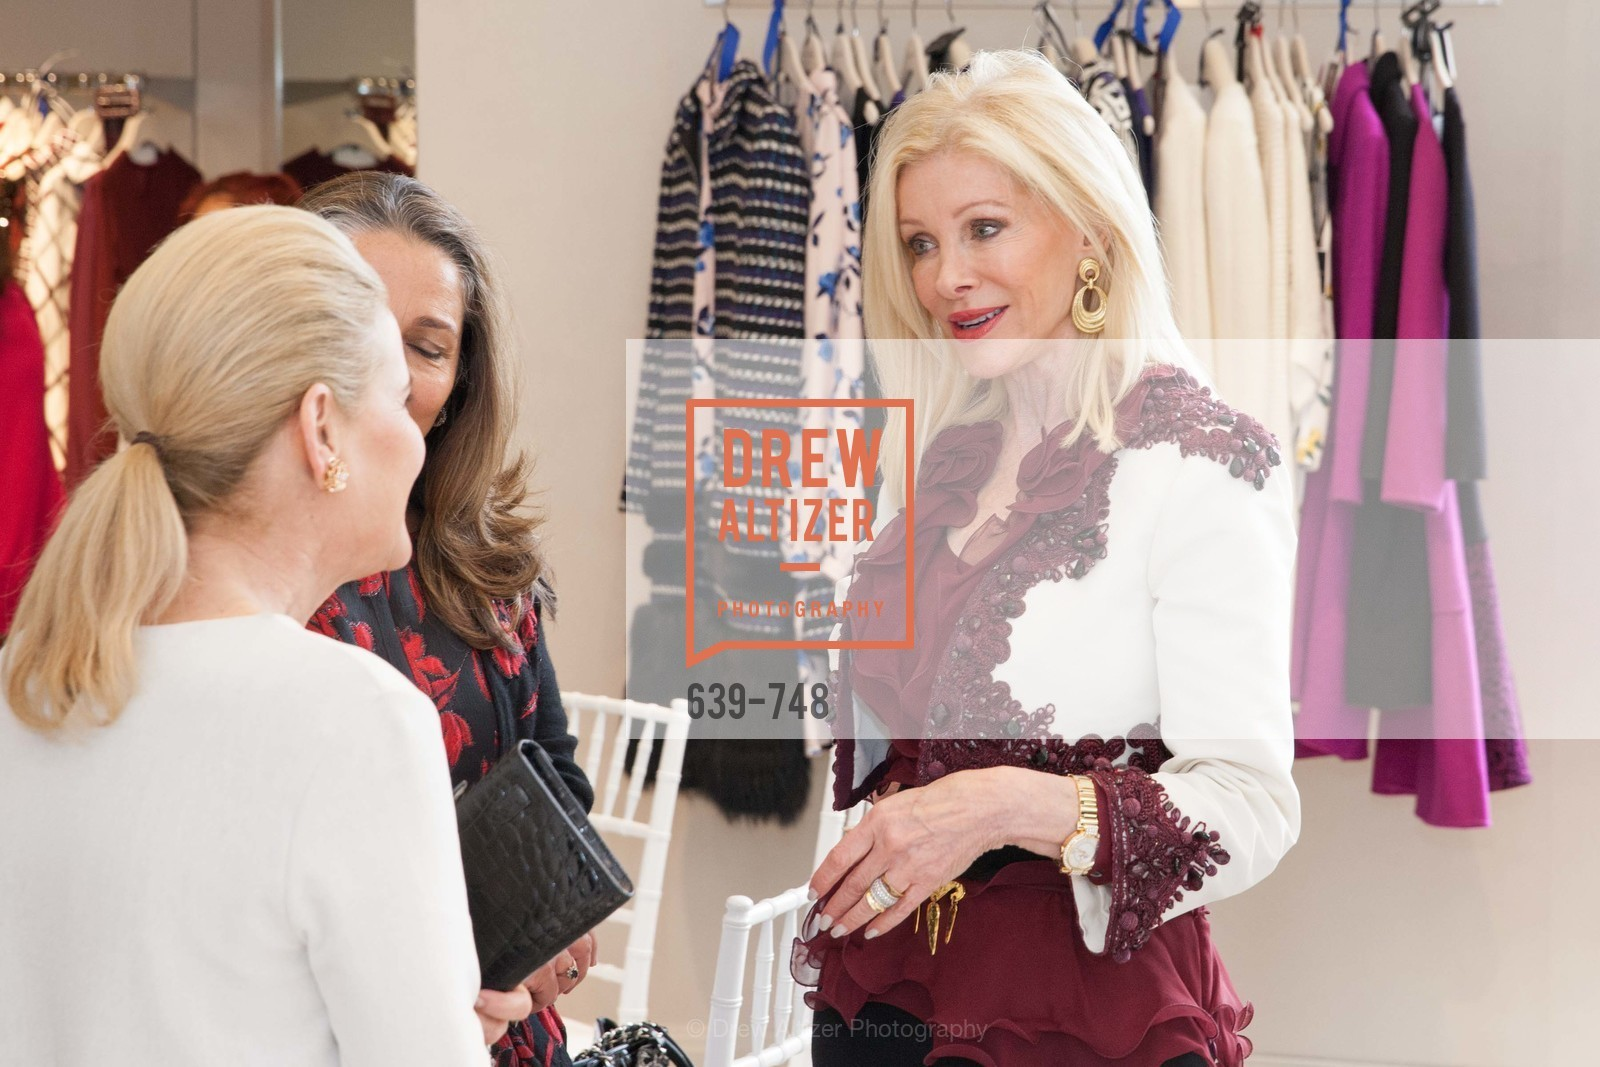 Pamala Deikel, PETER COPPING Makes Personal Appearance at SAKS FIFTH AVENUE, US, May 21st, 2015,Drew Altizer, Drew Altizer Photography, full-service agency, private events, San Francisco photographer, photographer california